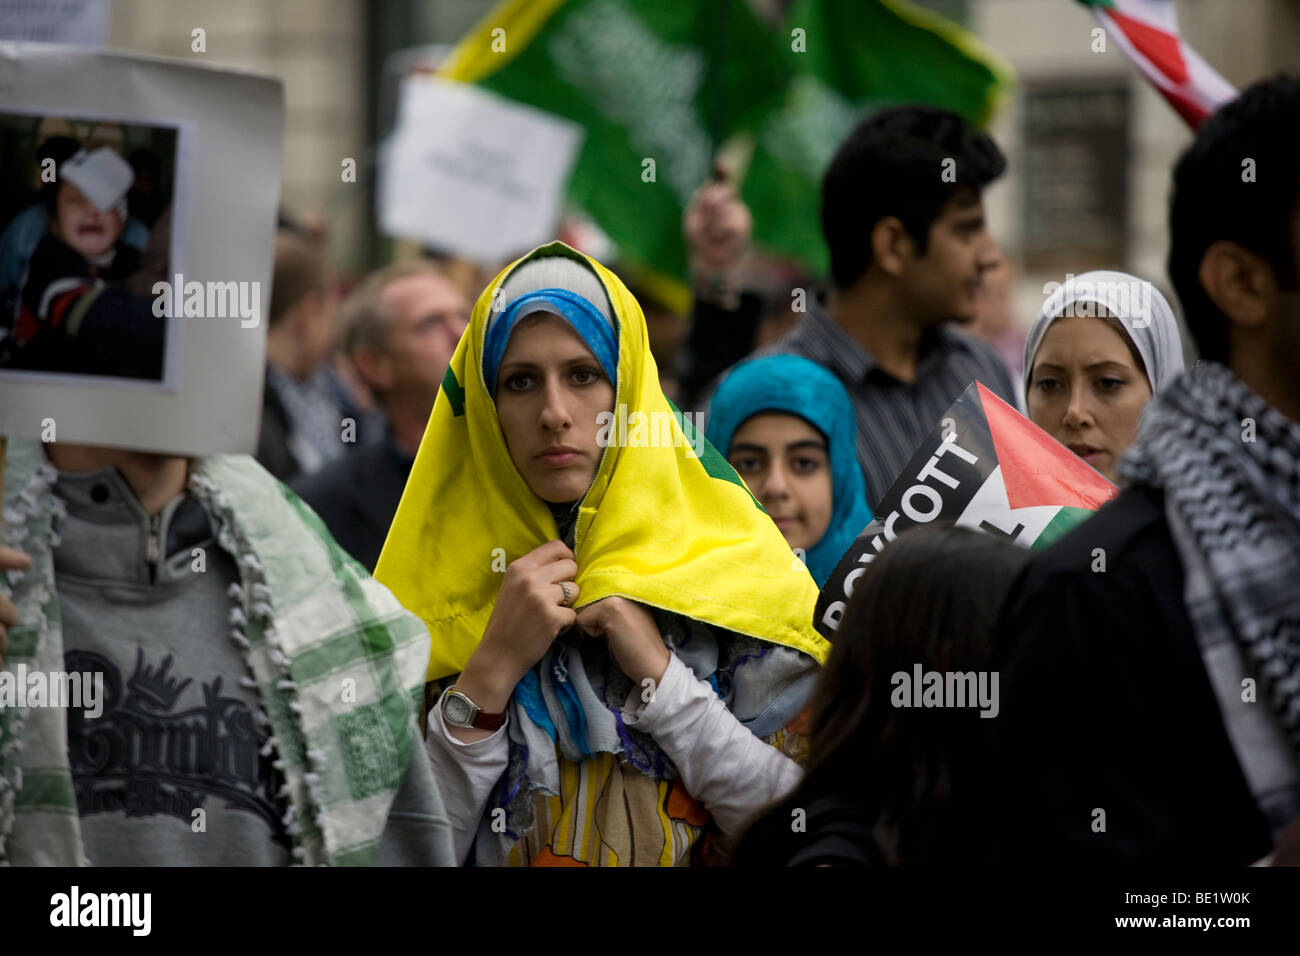 Al Quds demonstration against the state of Israel, held in London on September 13, 2009. - Stock Image